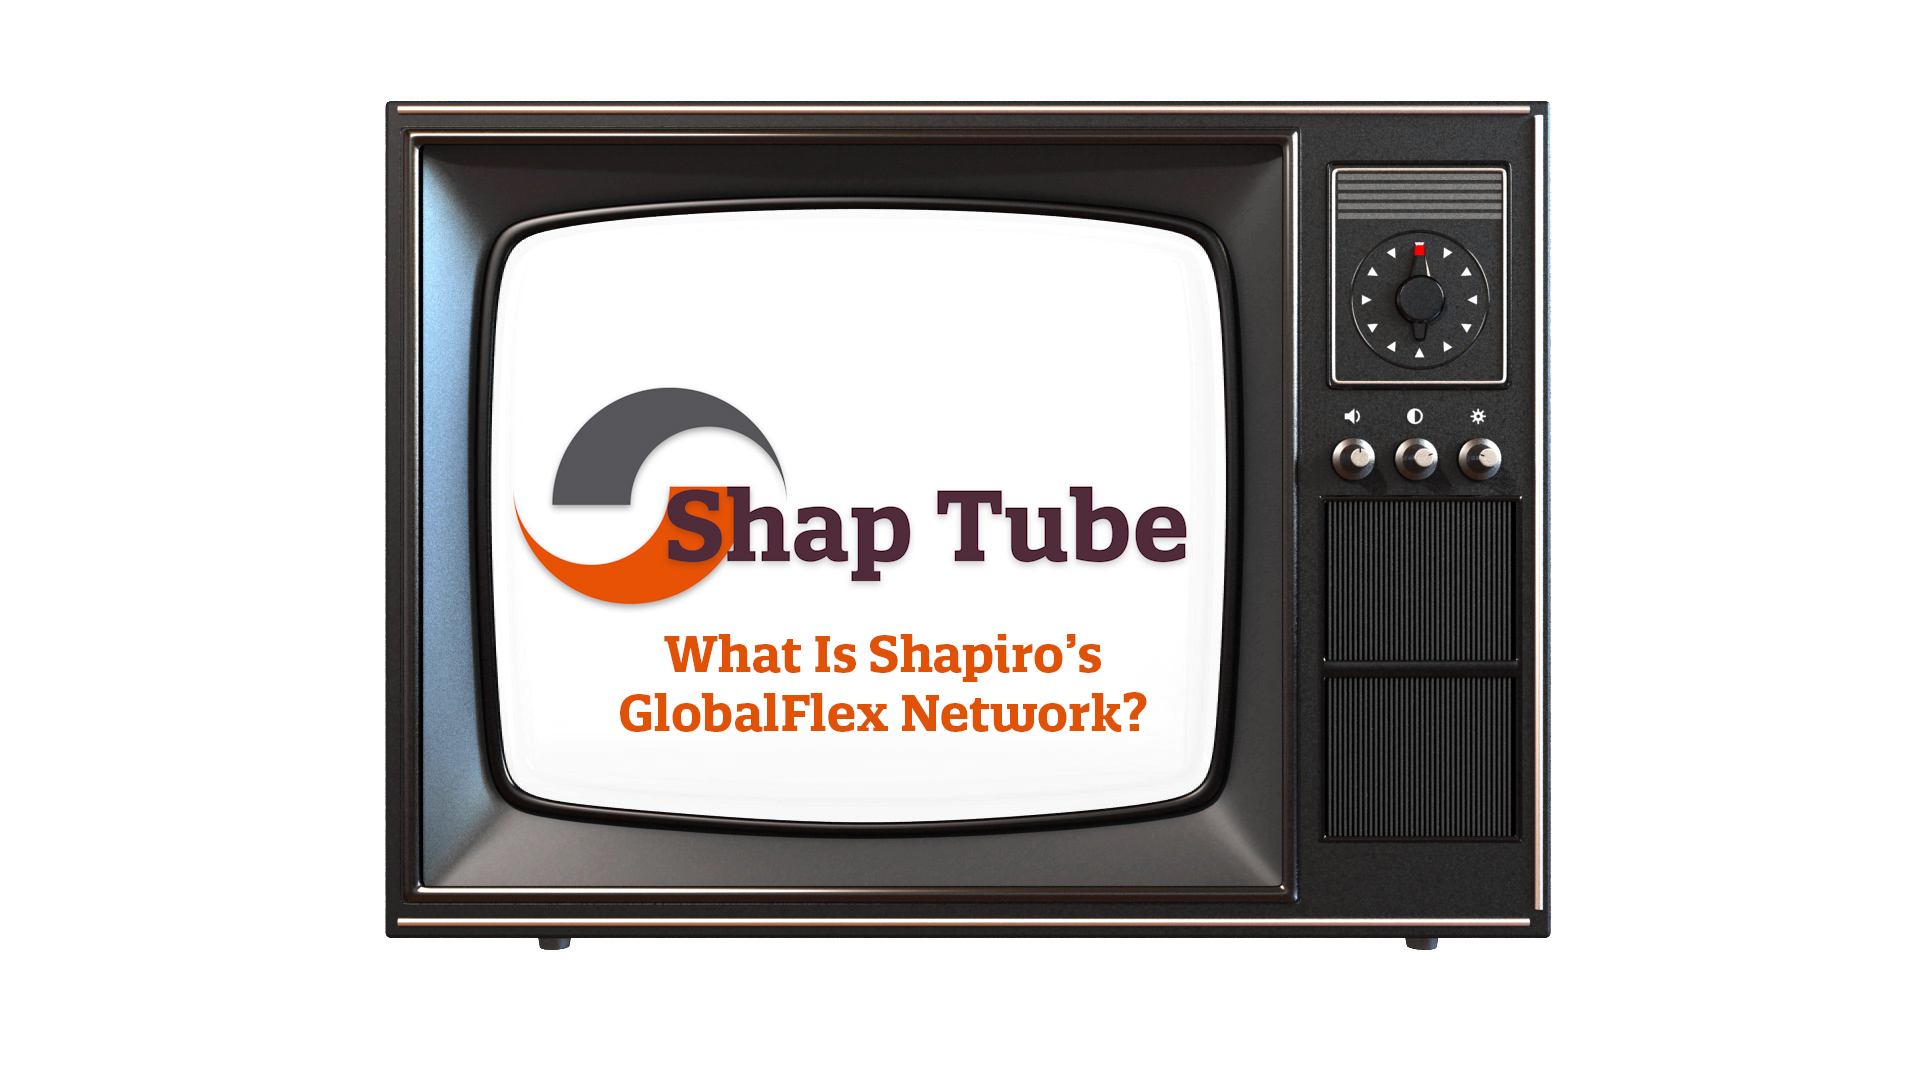 What Is Shapiro's GlobalFlex Network?